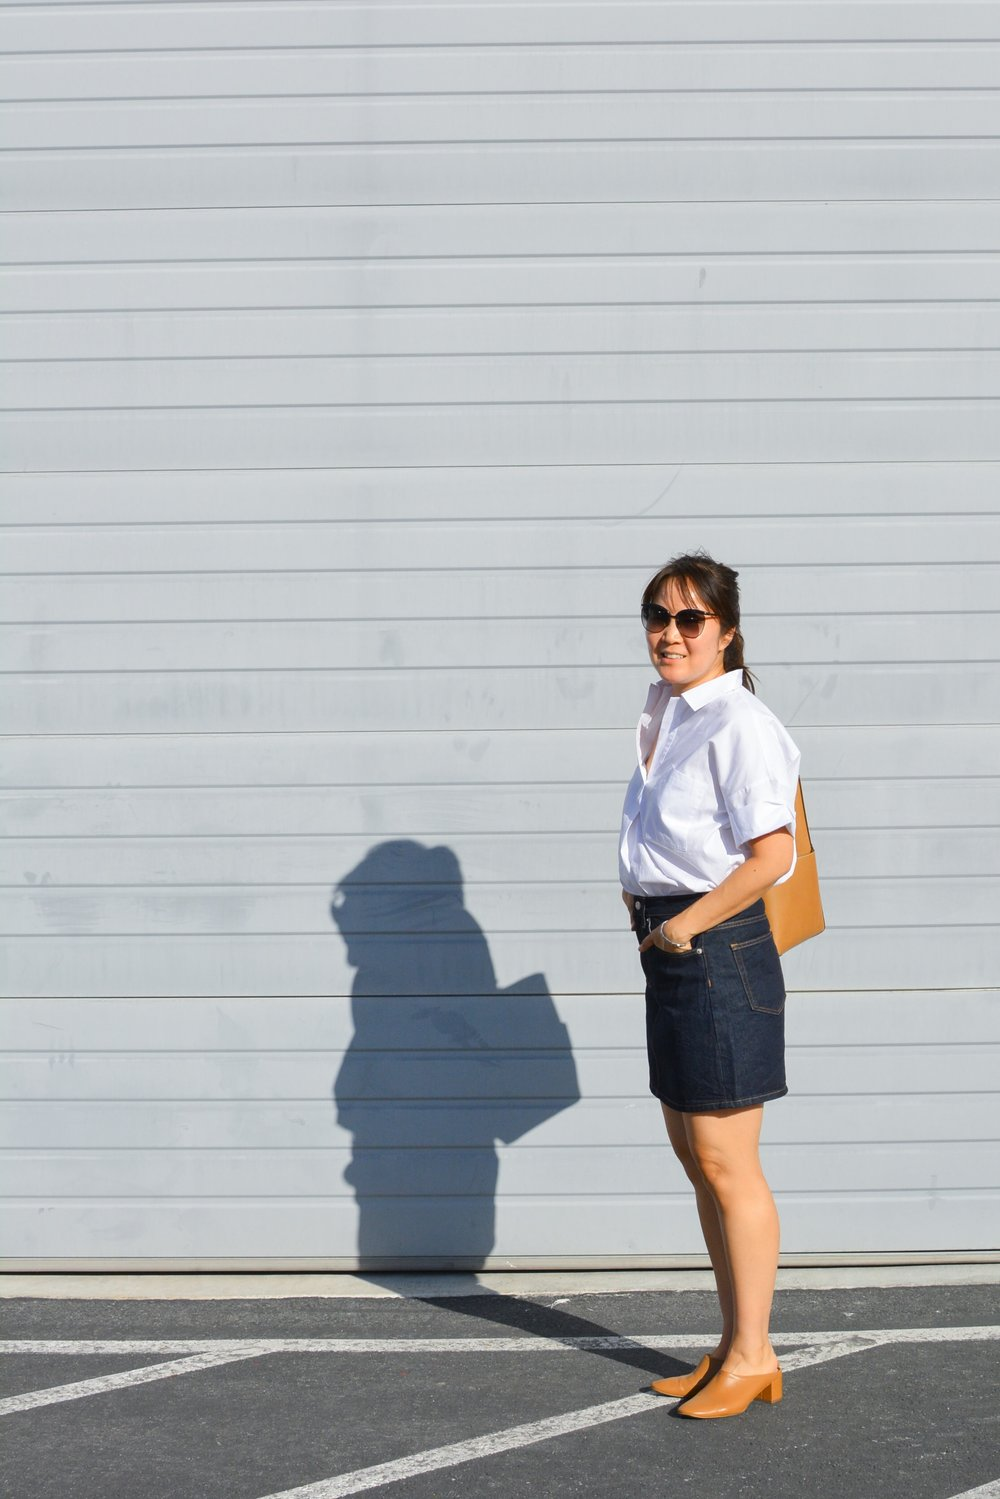 Everlane Review The The Denim Skirt (4 of 4)-min.jpg